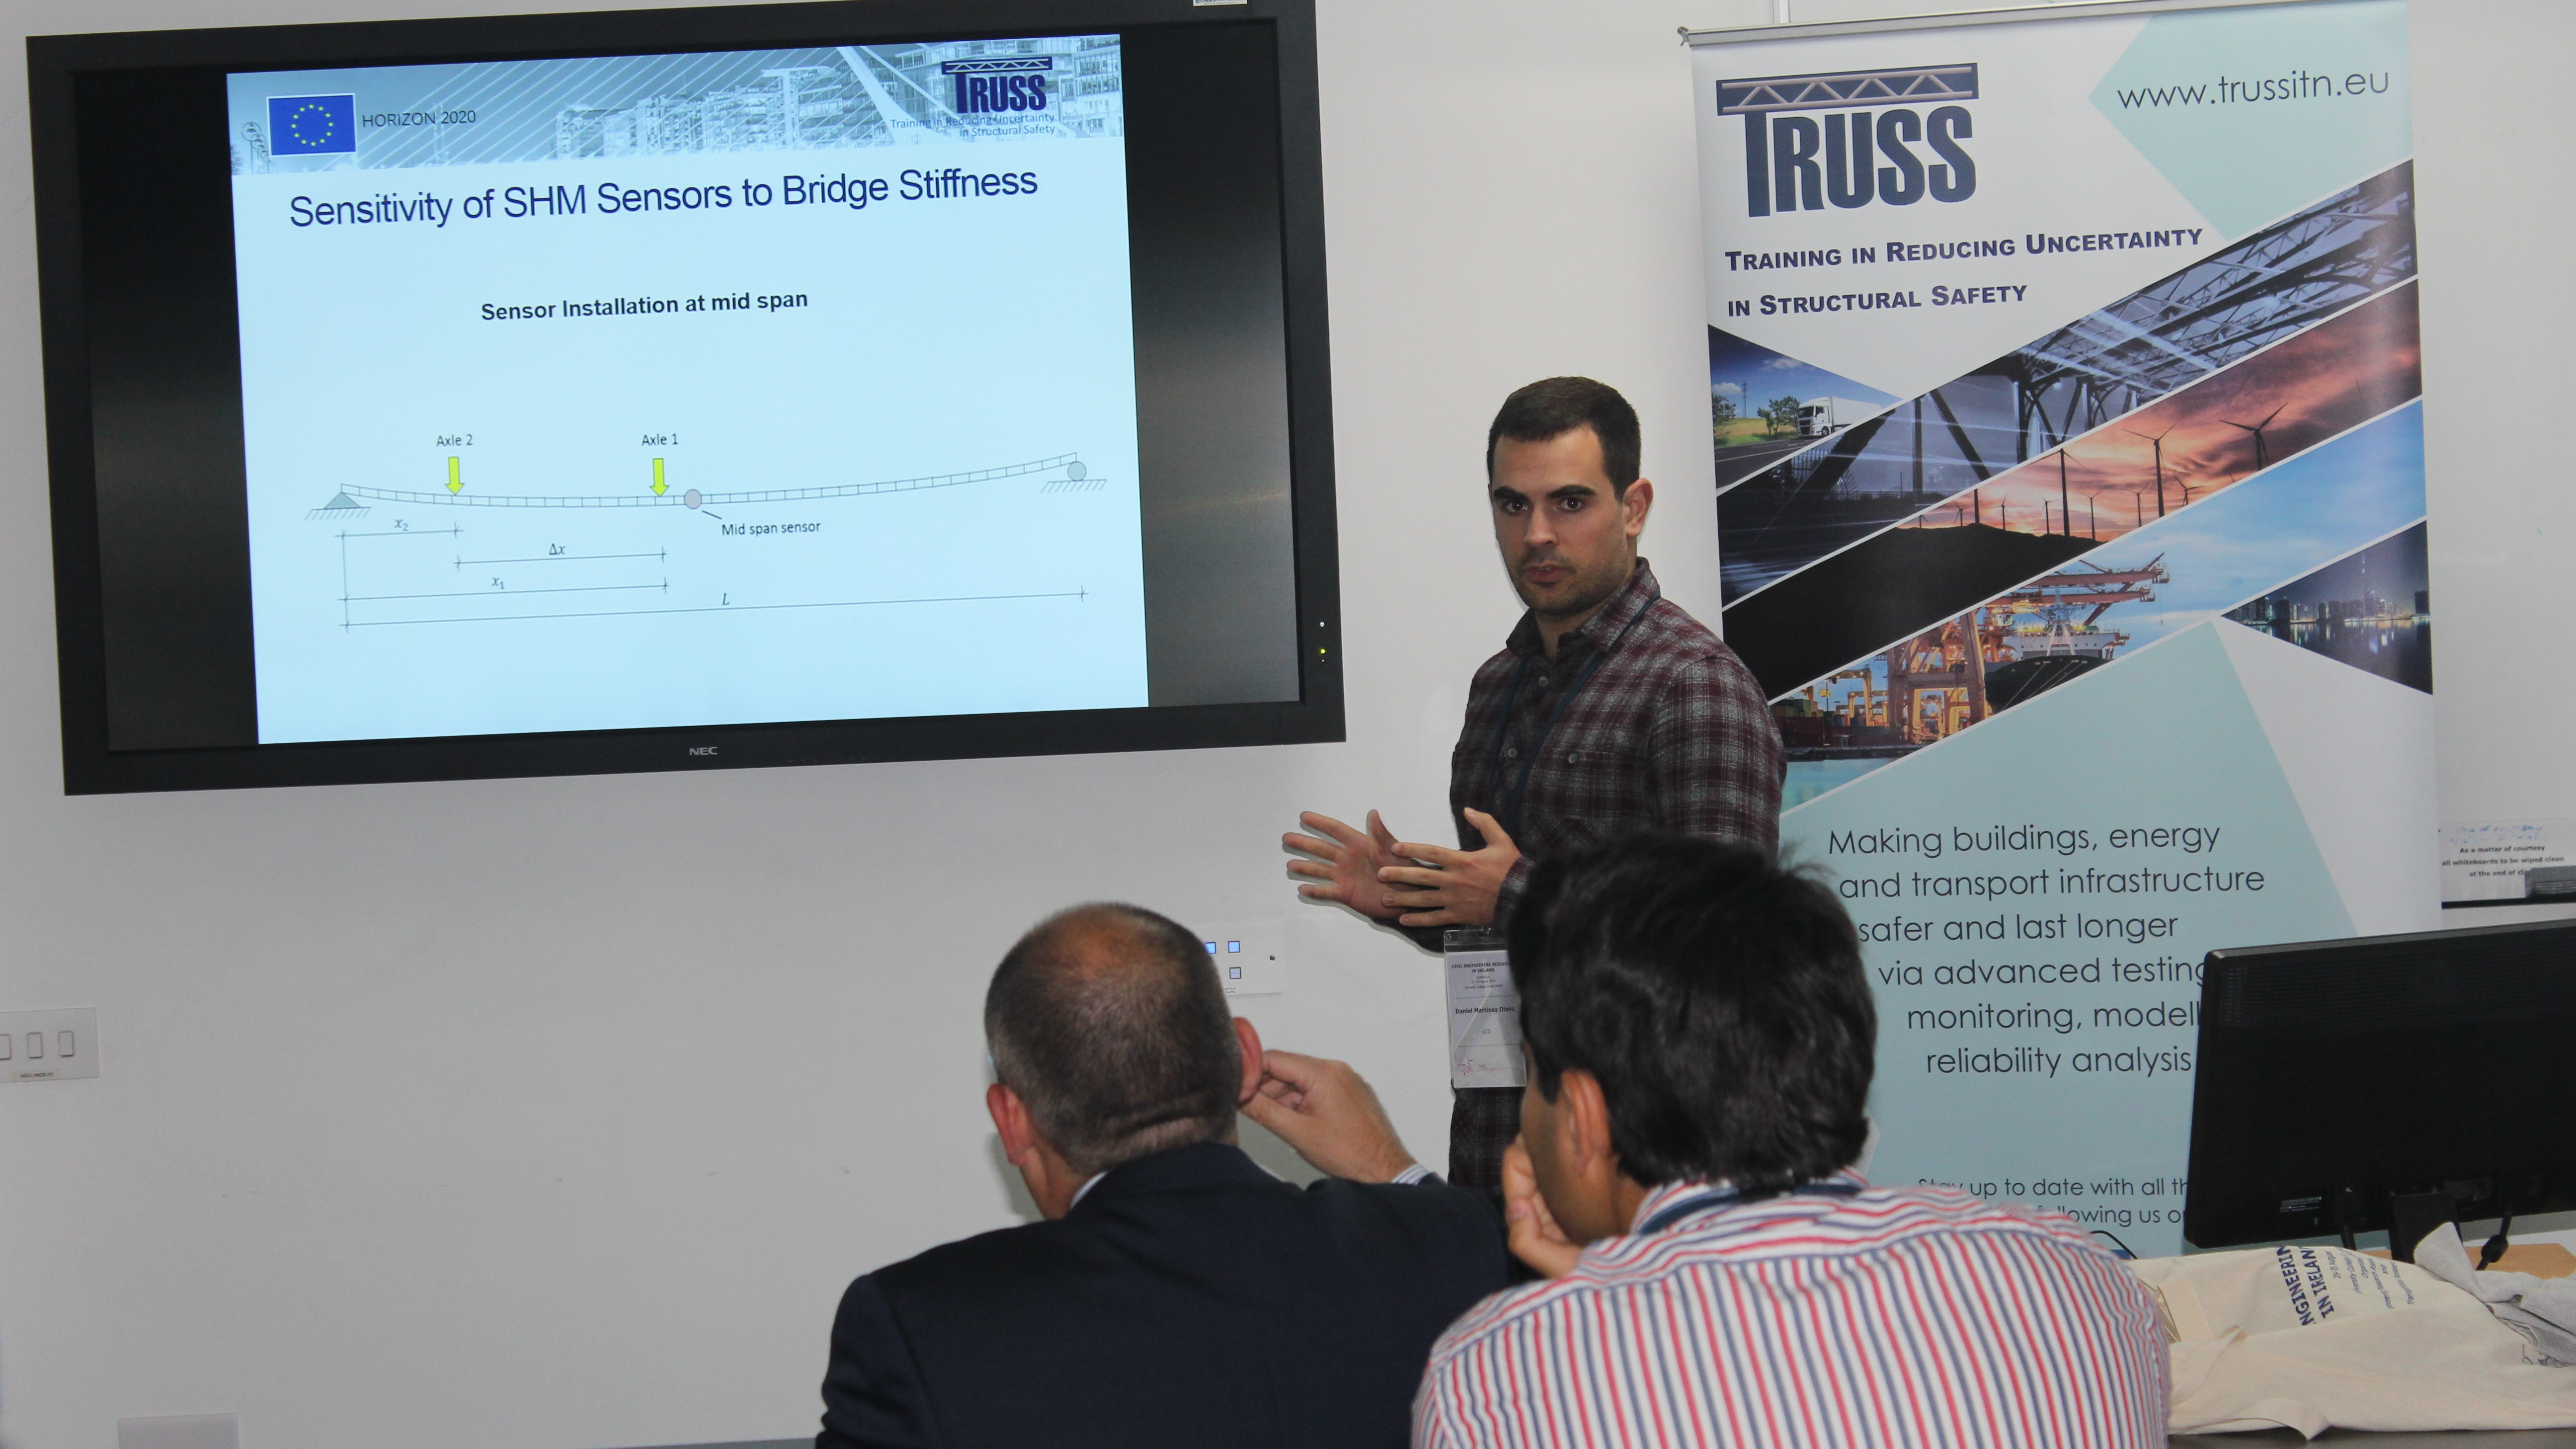 TRUSS_Workshop2018_ESR12_presenting